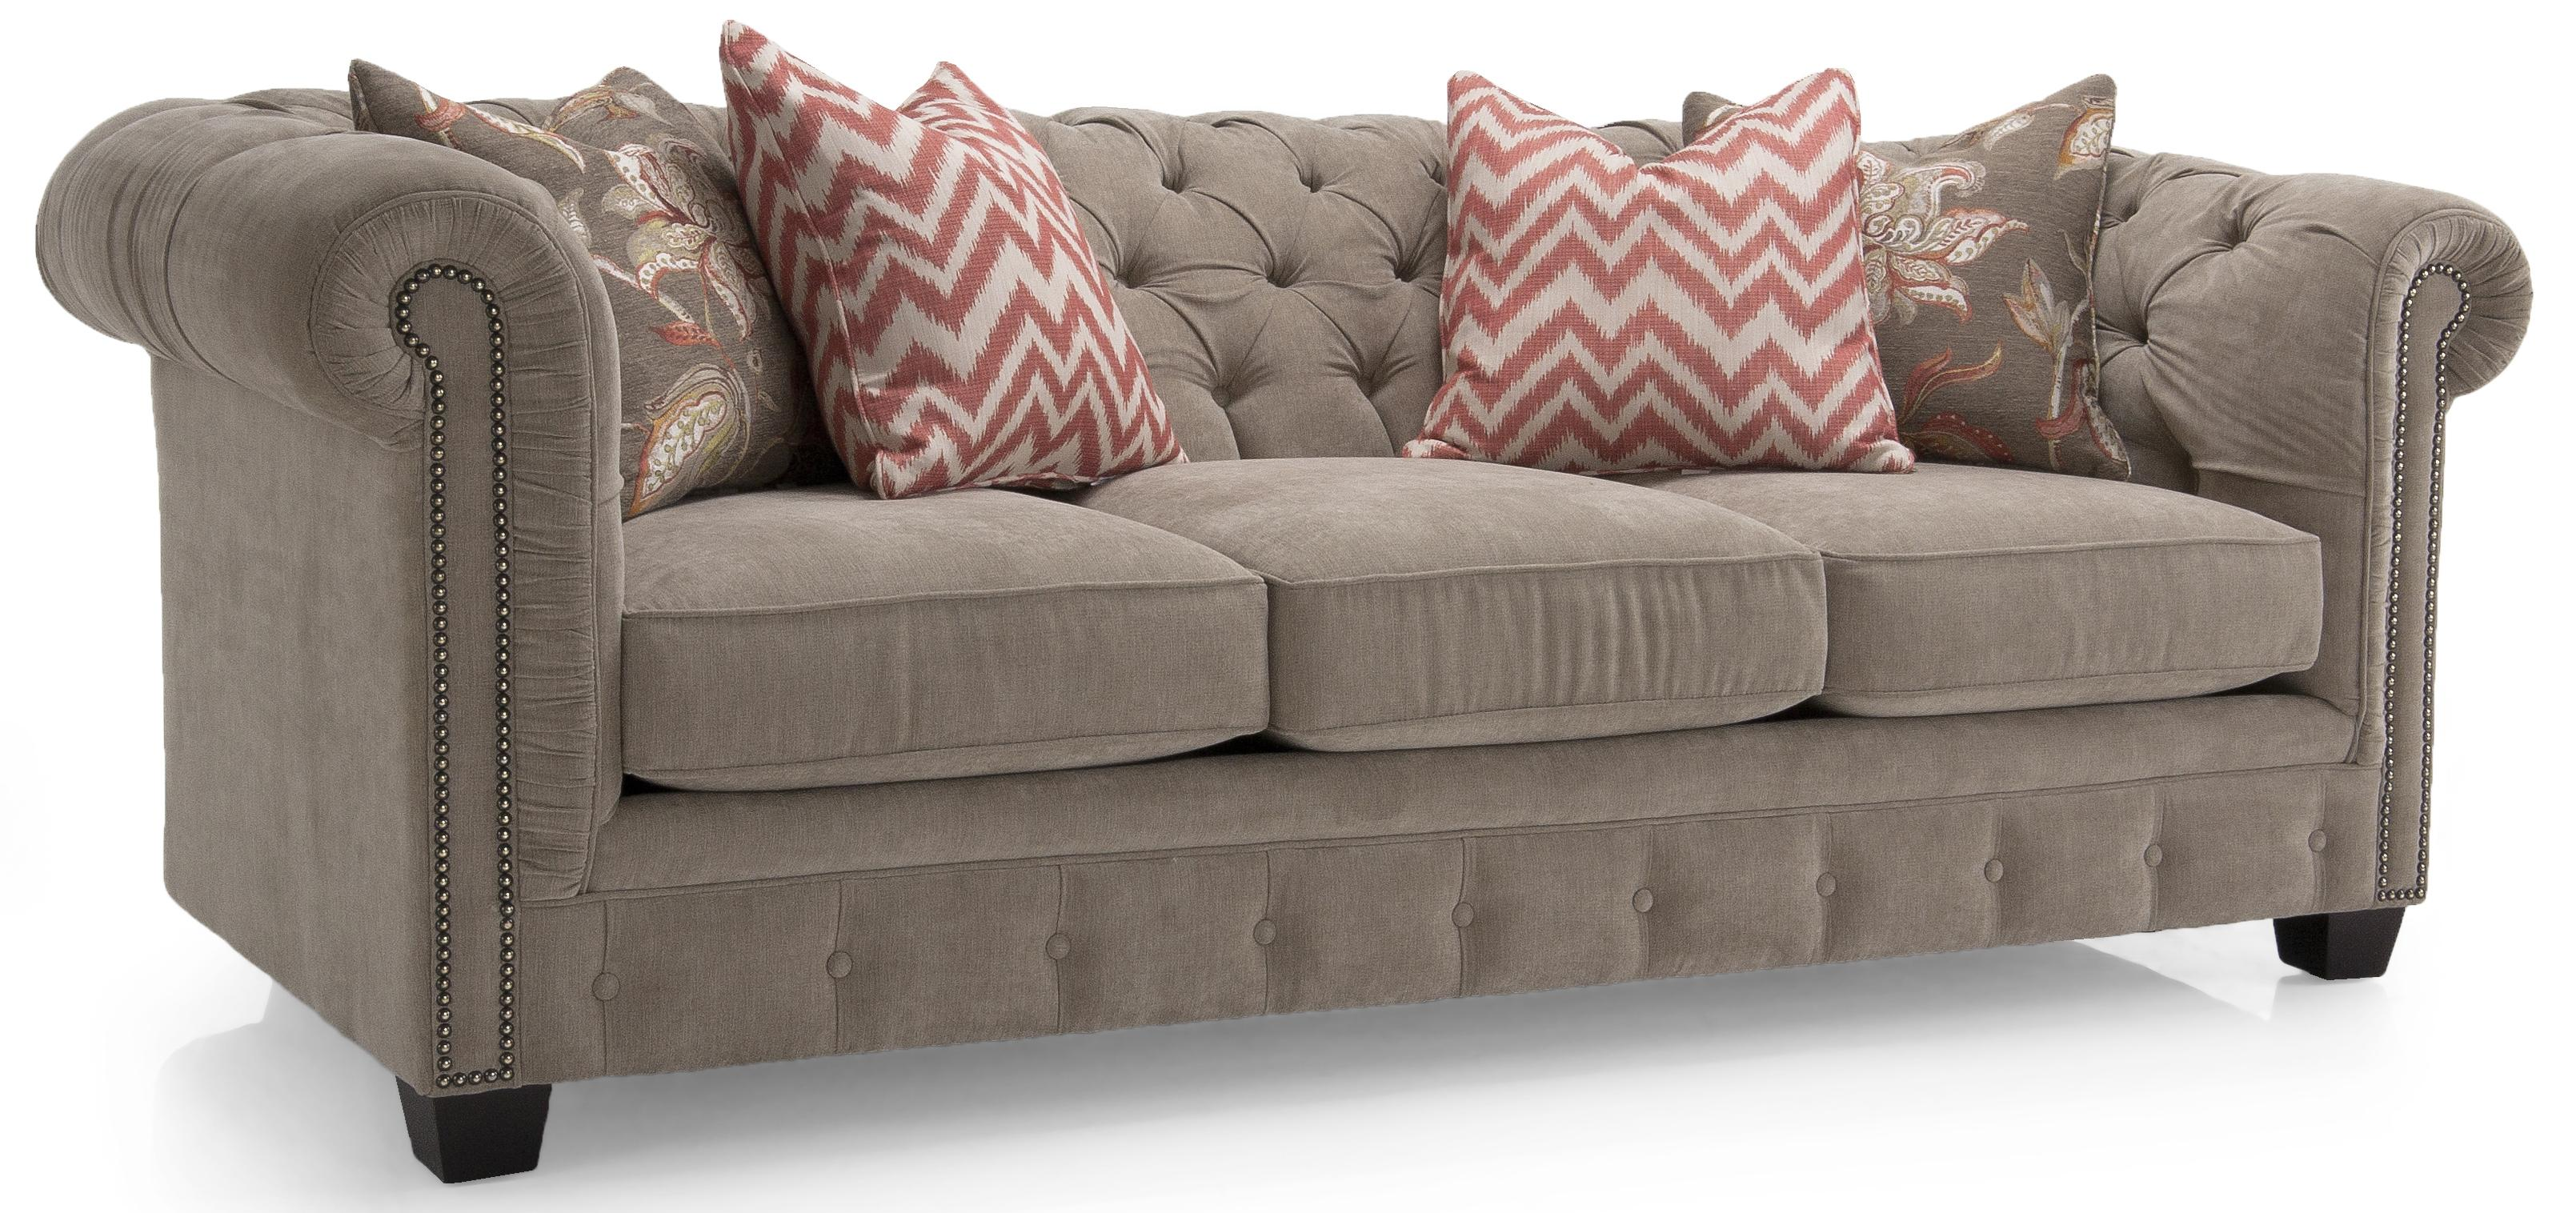 2230 Series Sofa by Decor-Rest at Johnny Janosik